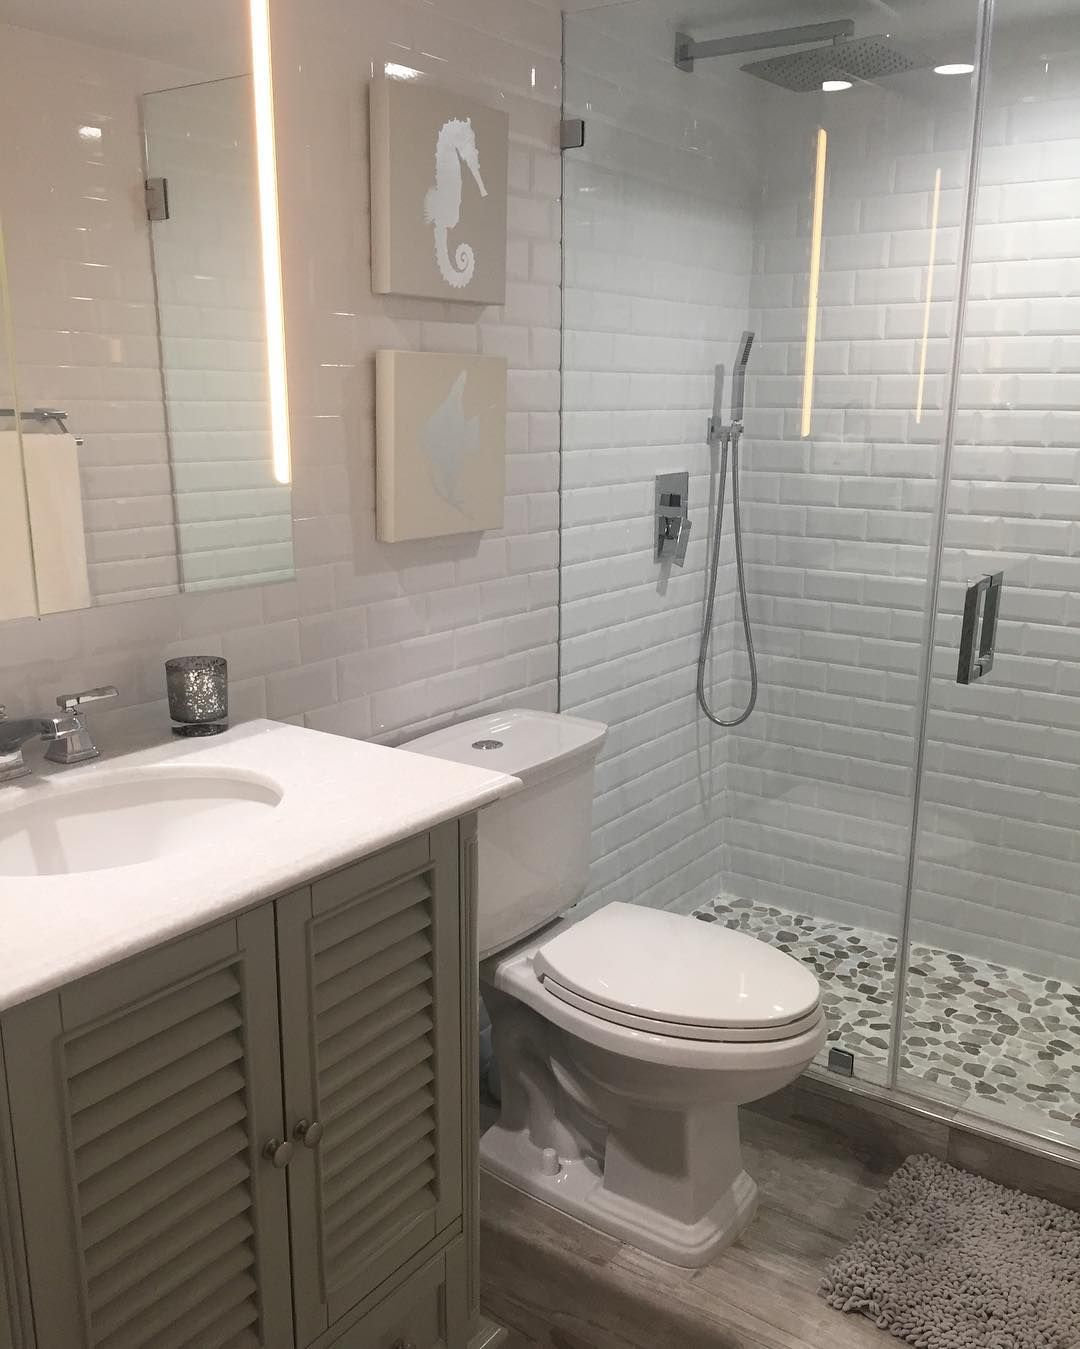 Love this style shower with the subway